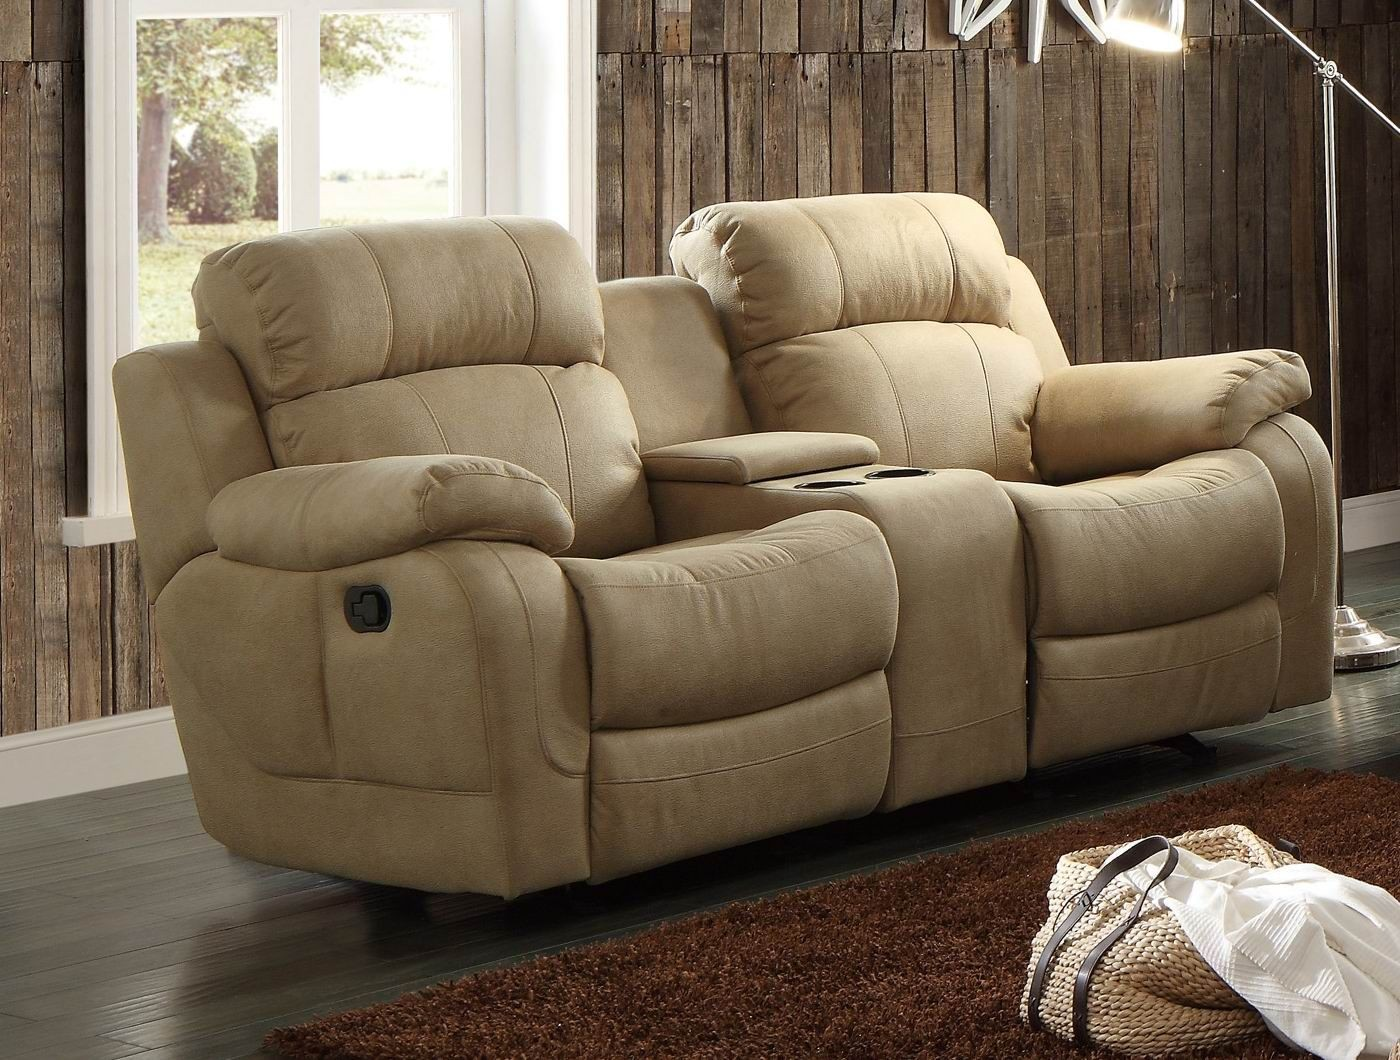 Marille Camel Double Glider Reclining Console Loveseat From Homelegance 9724tpe 2 Coleman